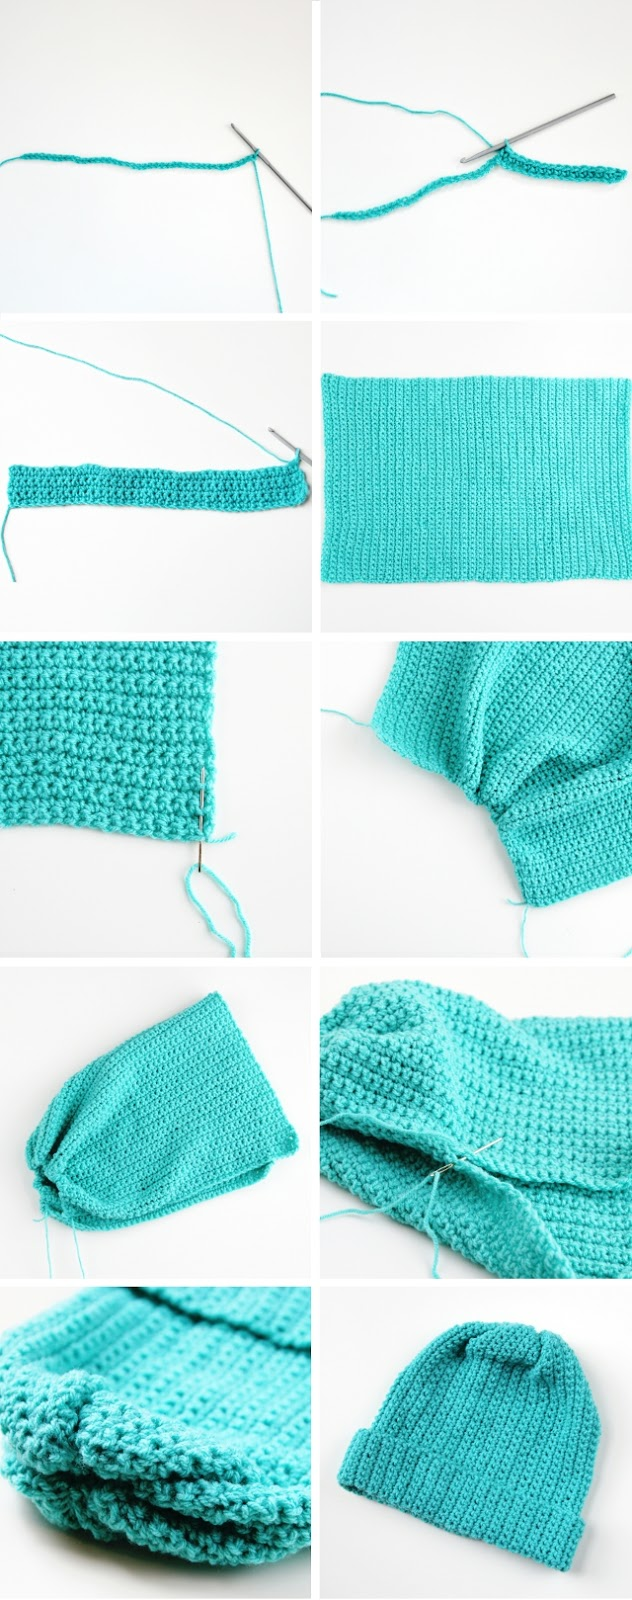 How to Foundation Single Crochet: 15 Steps (with Pictures)